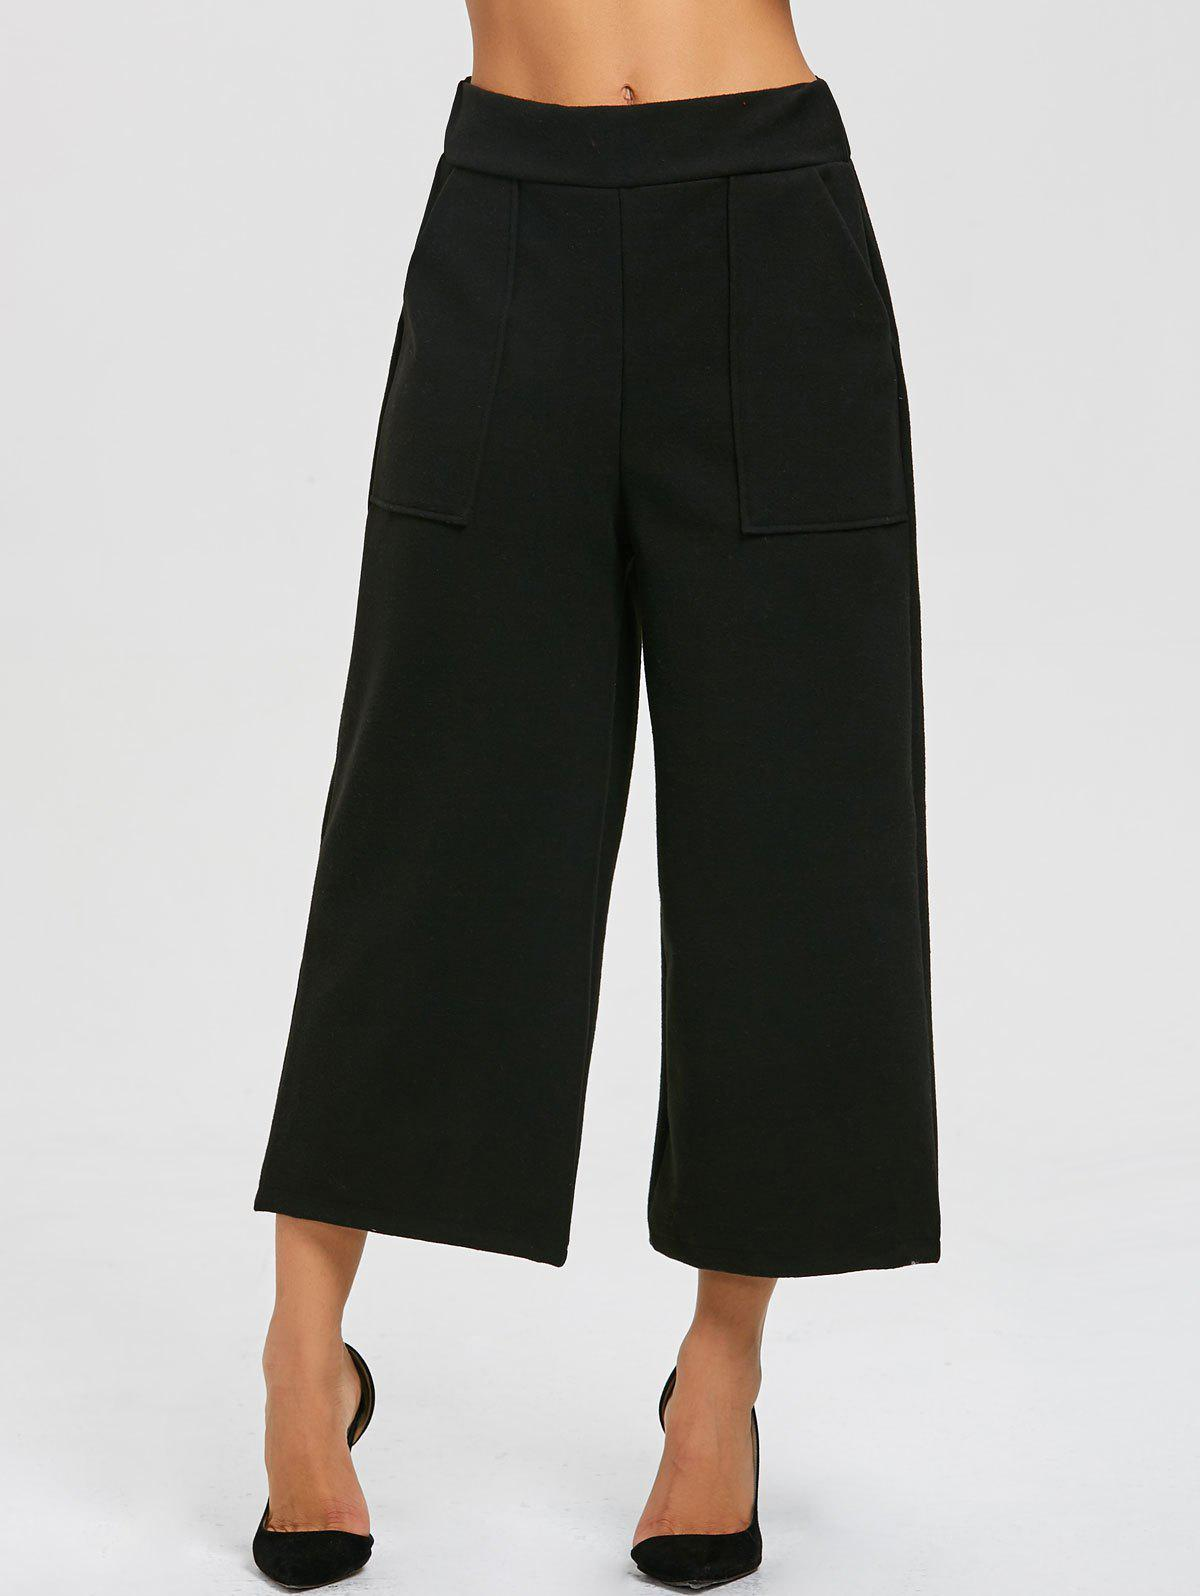 Capri High Waisted Palazzo Pants - BLACK M